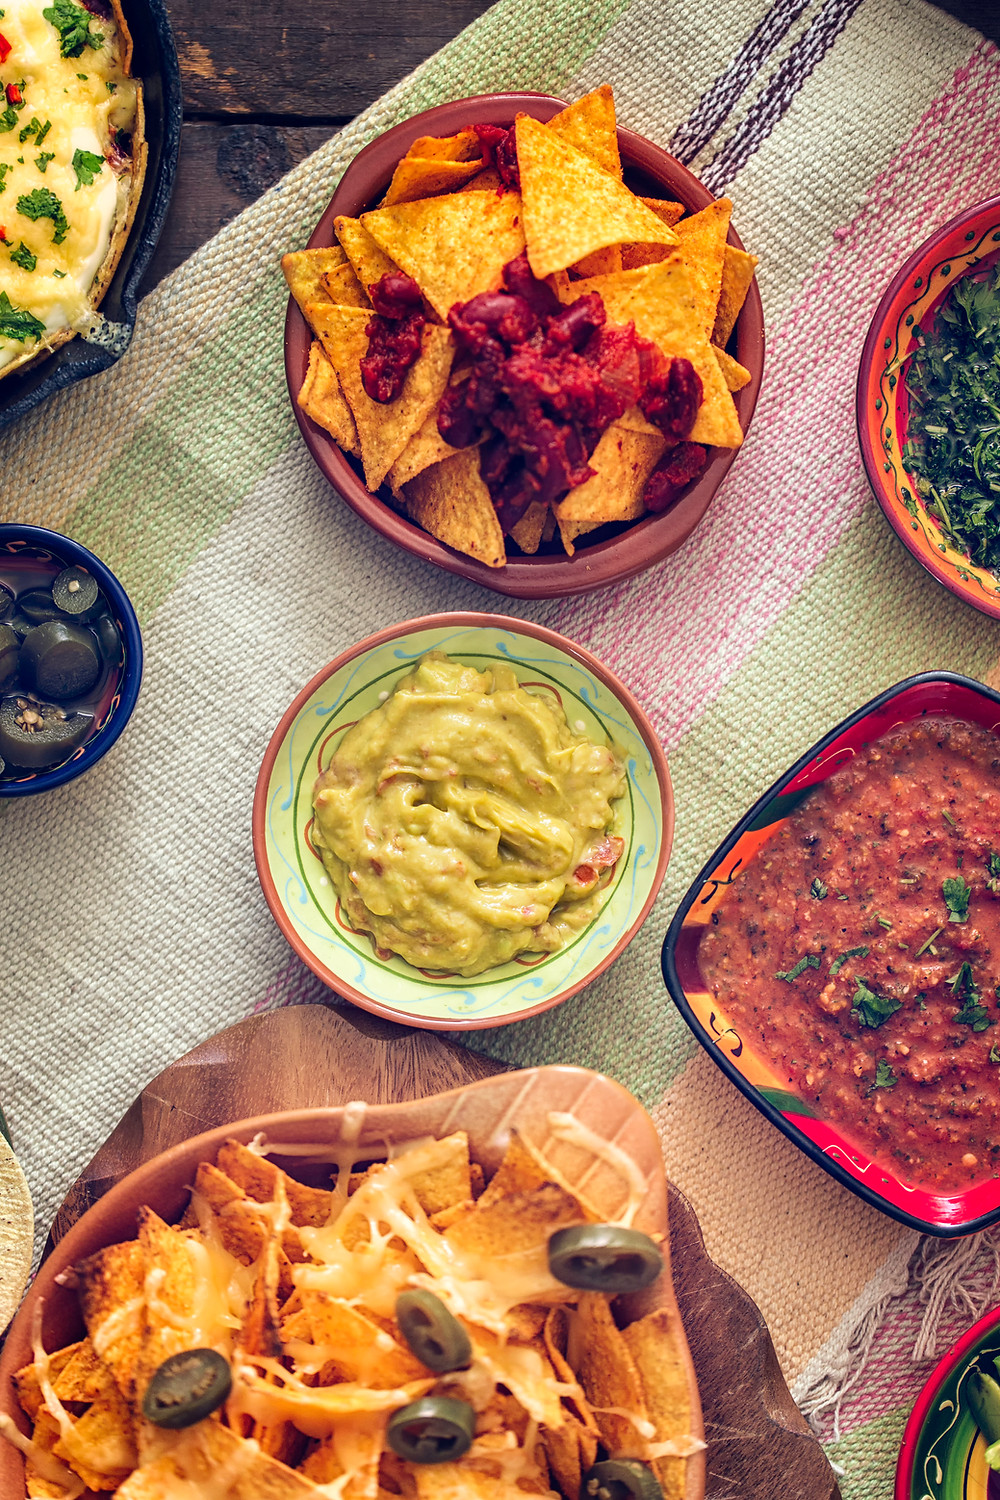 Tex-Mex favorites: chips, salsa, and guacamole